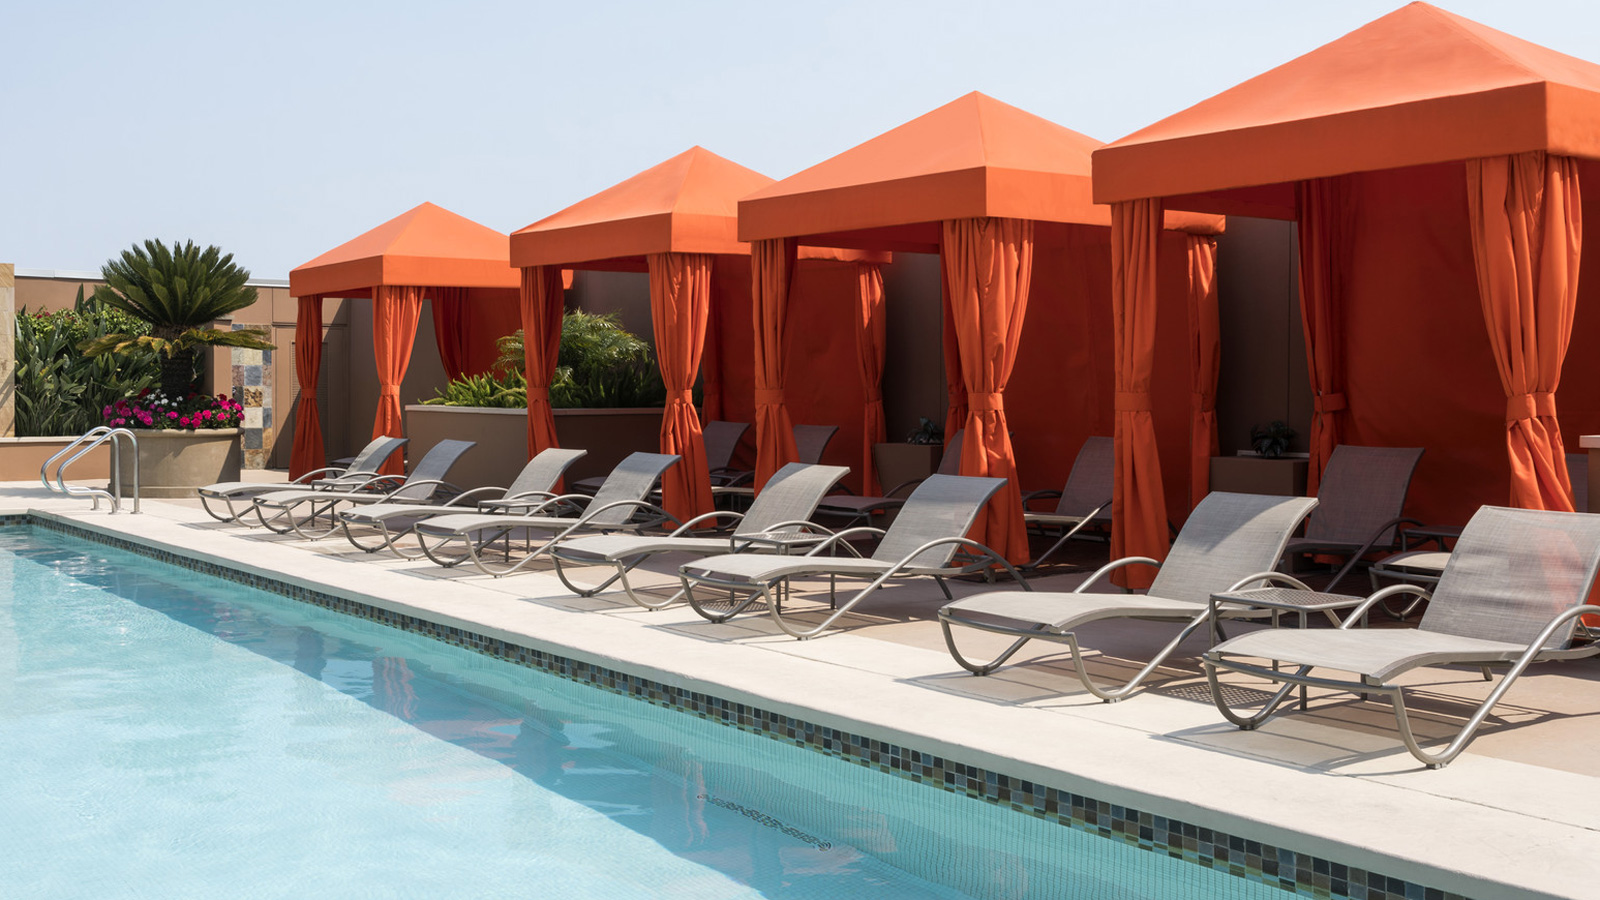 Palo Alto Hotel with Rooftop Pool | Four Seasons Hotel Silicon Valley